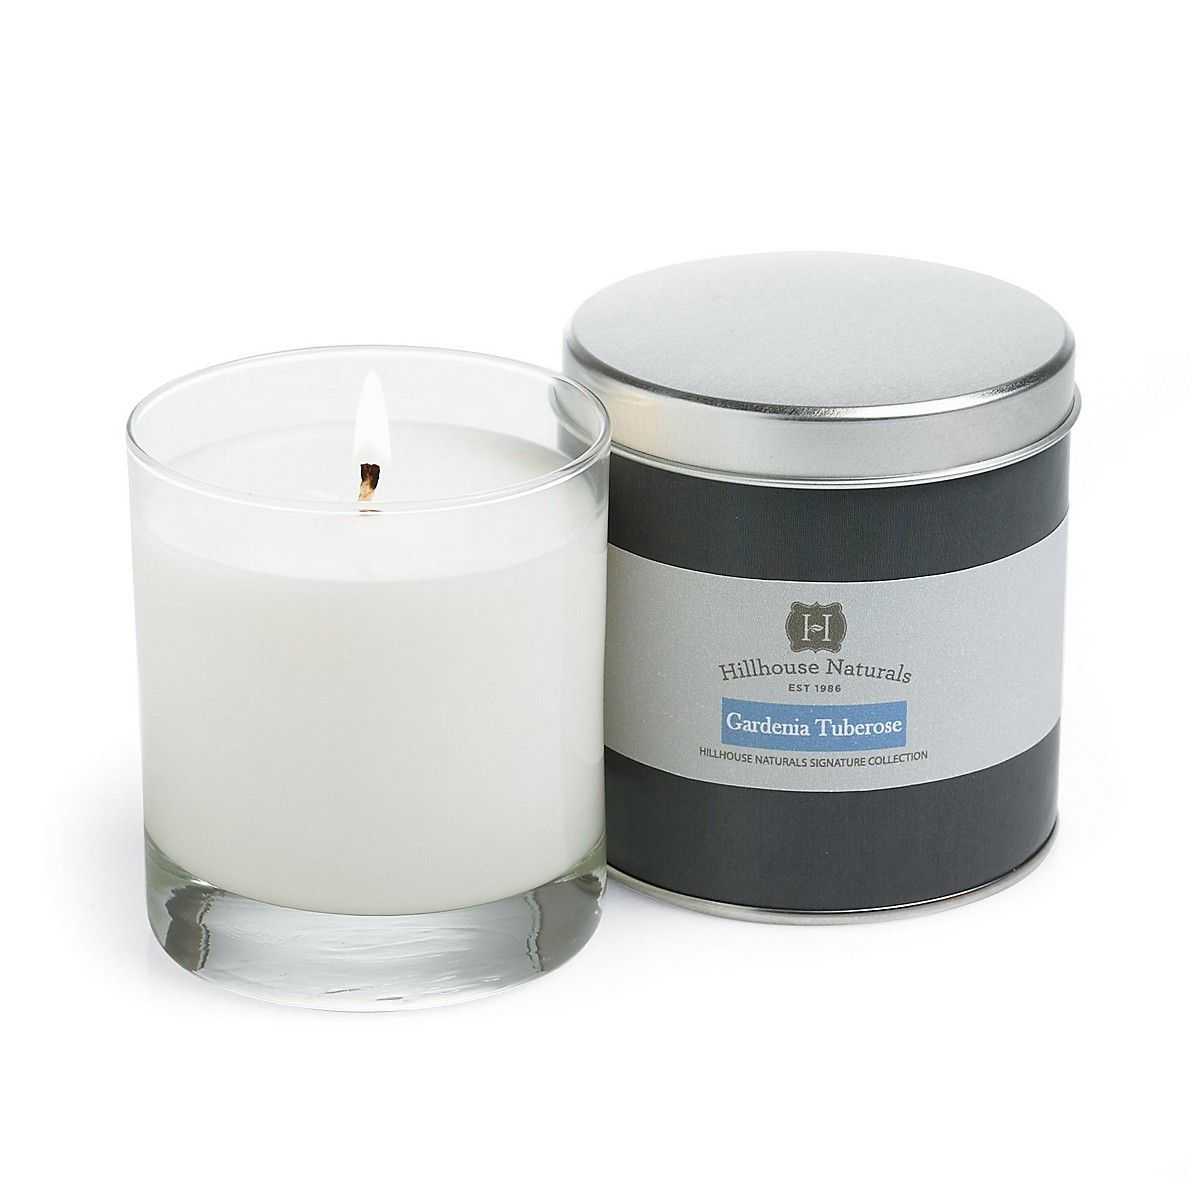 Hillhouse Naturals Gardenia Tuberose Candle Wish List For The